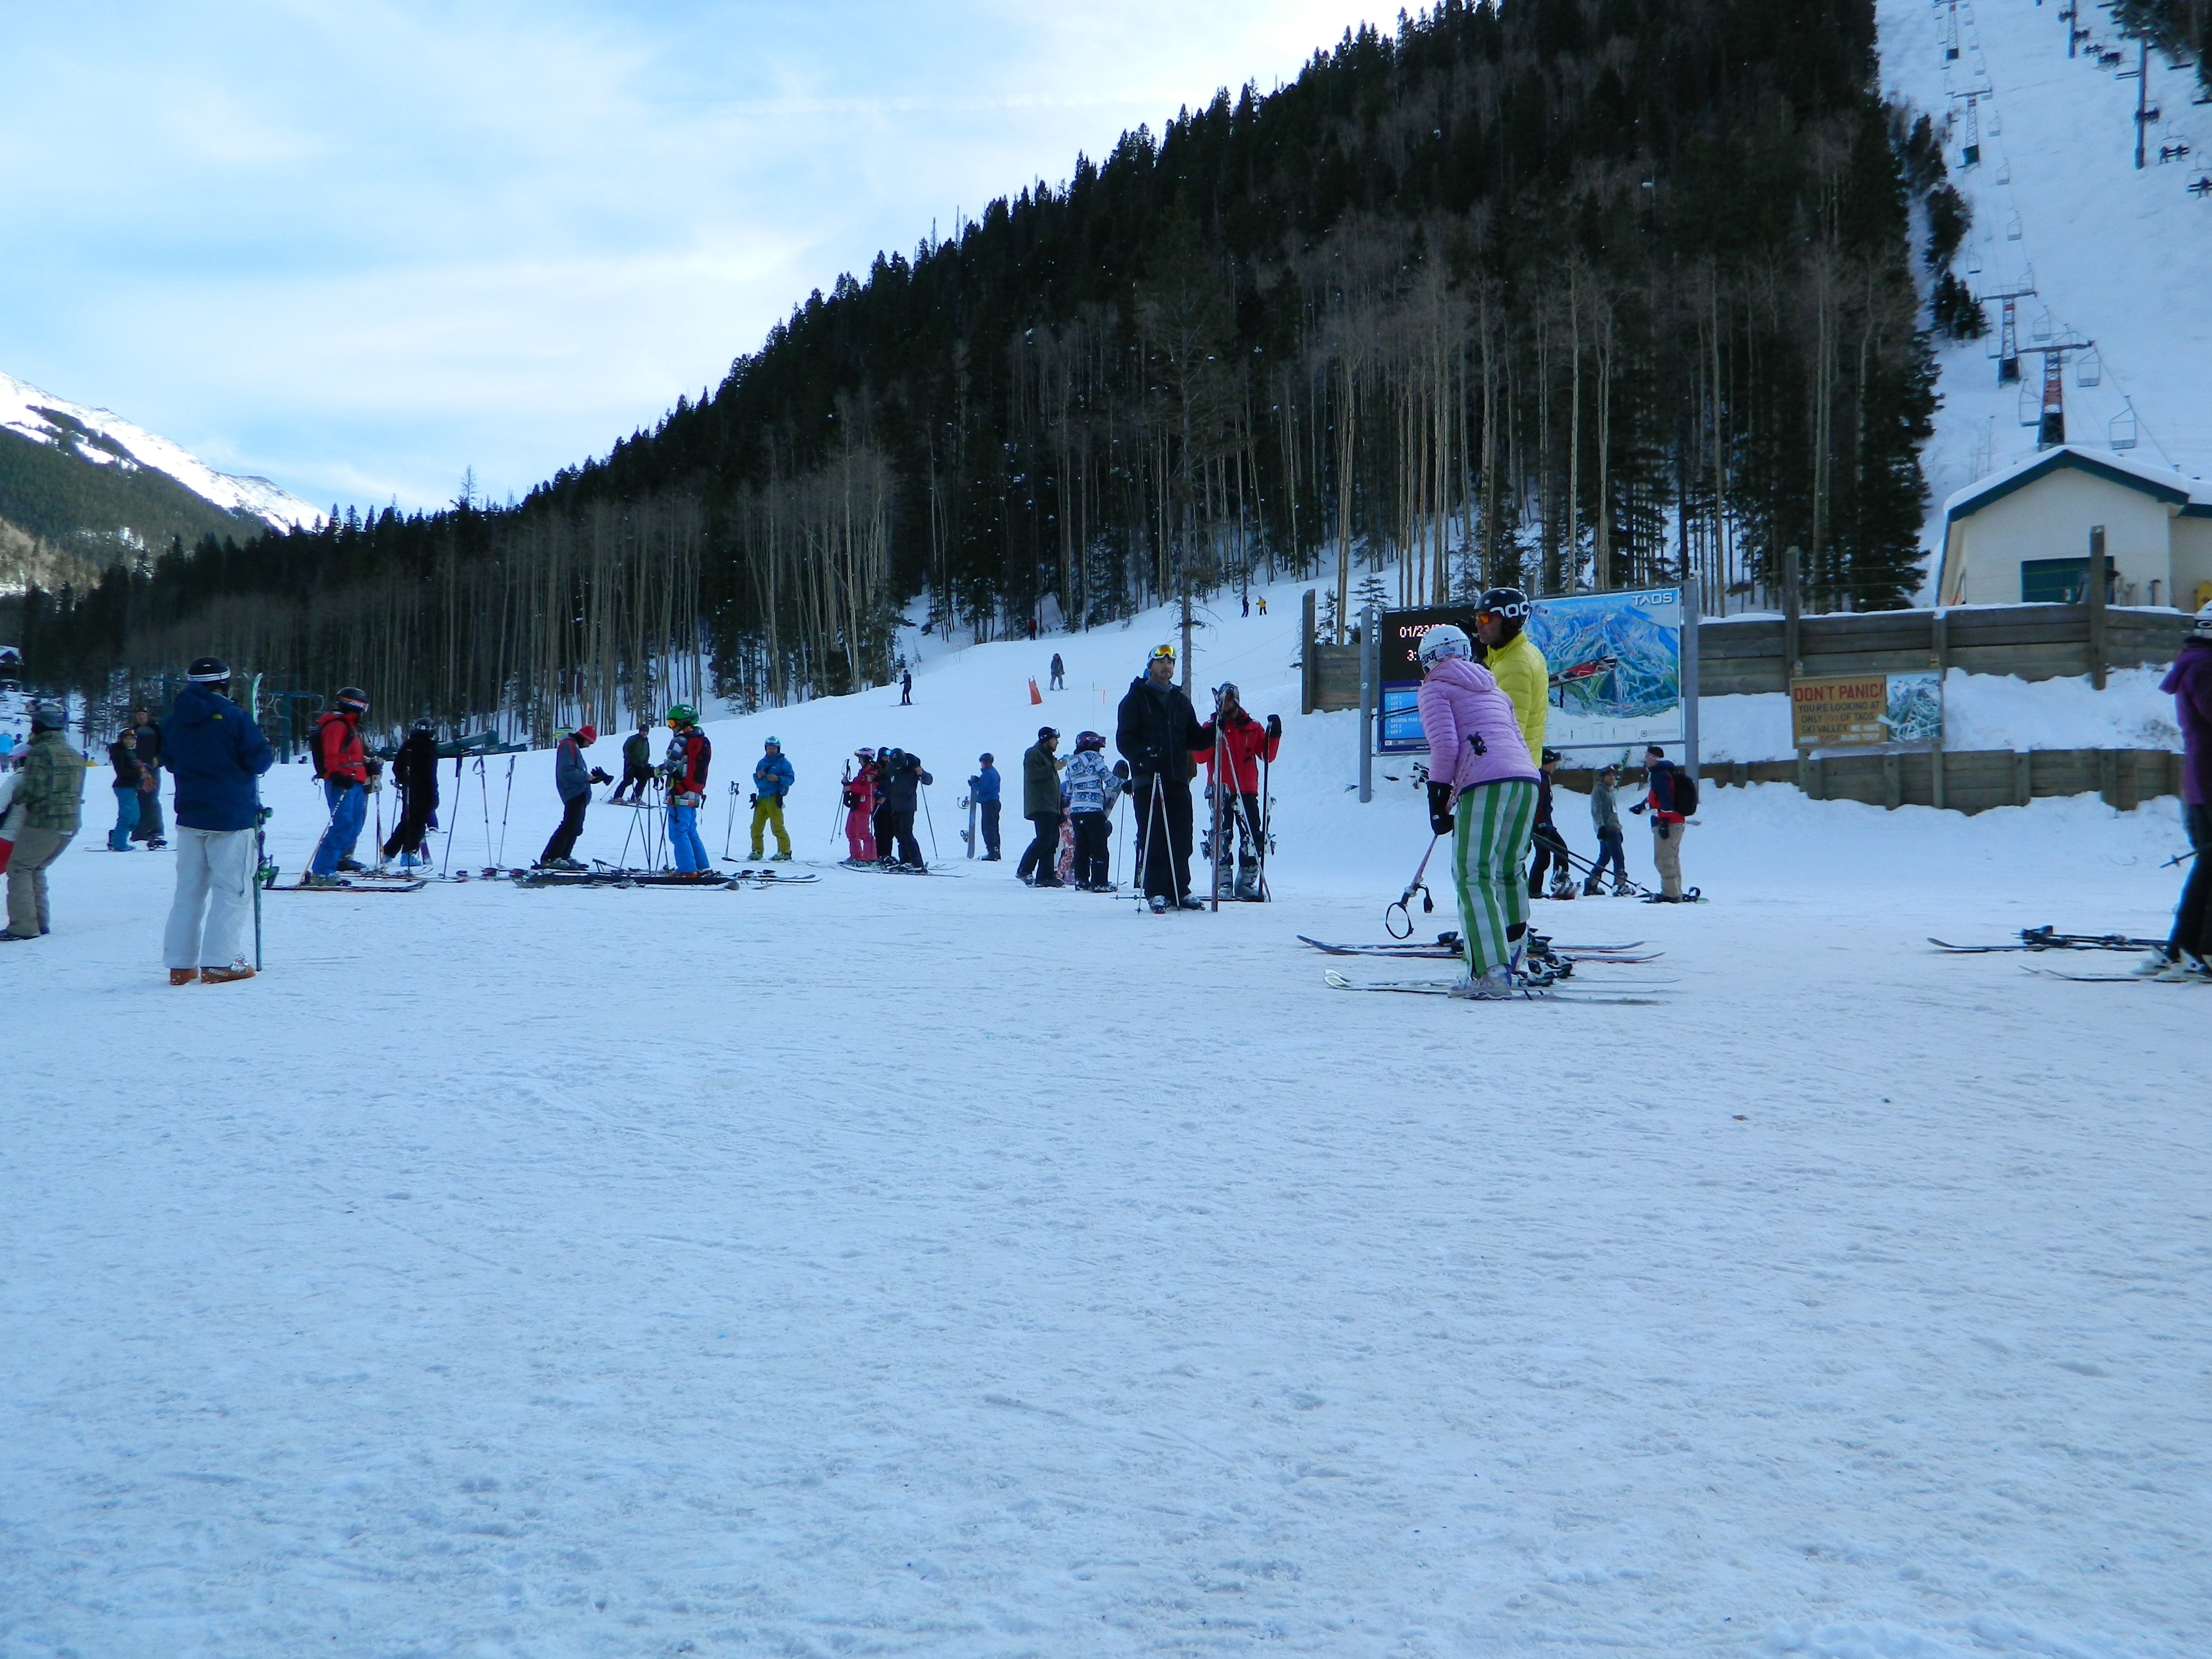 Many skiers conversing at the foot of Taos Ski Valley in the late afternoon shade.